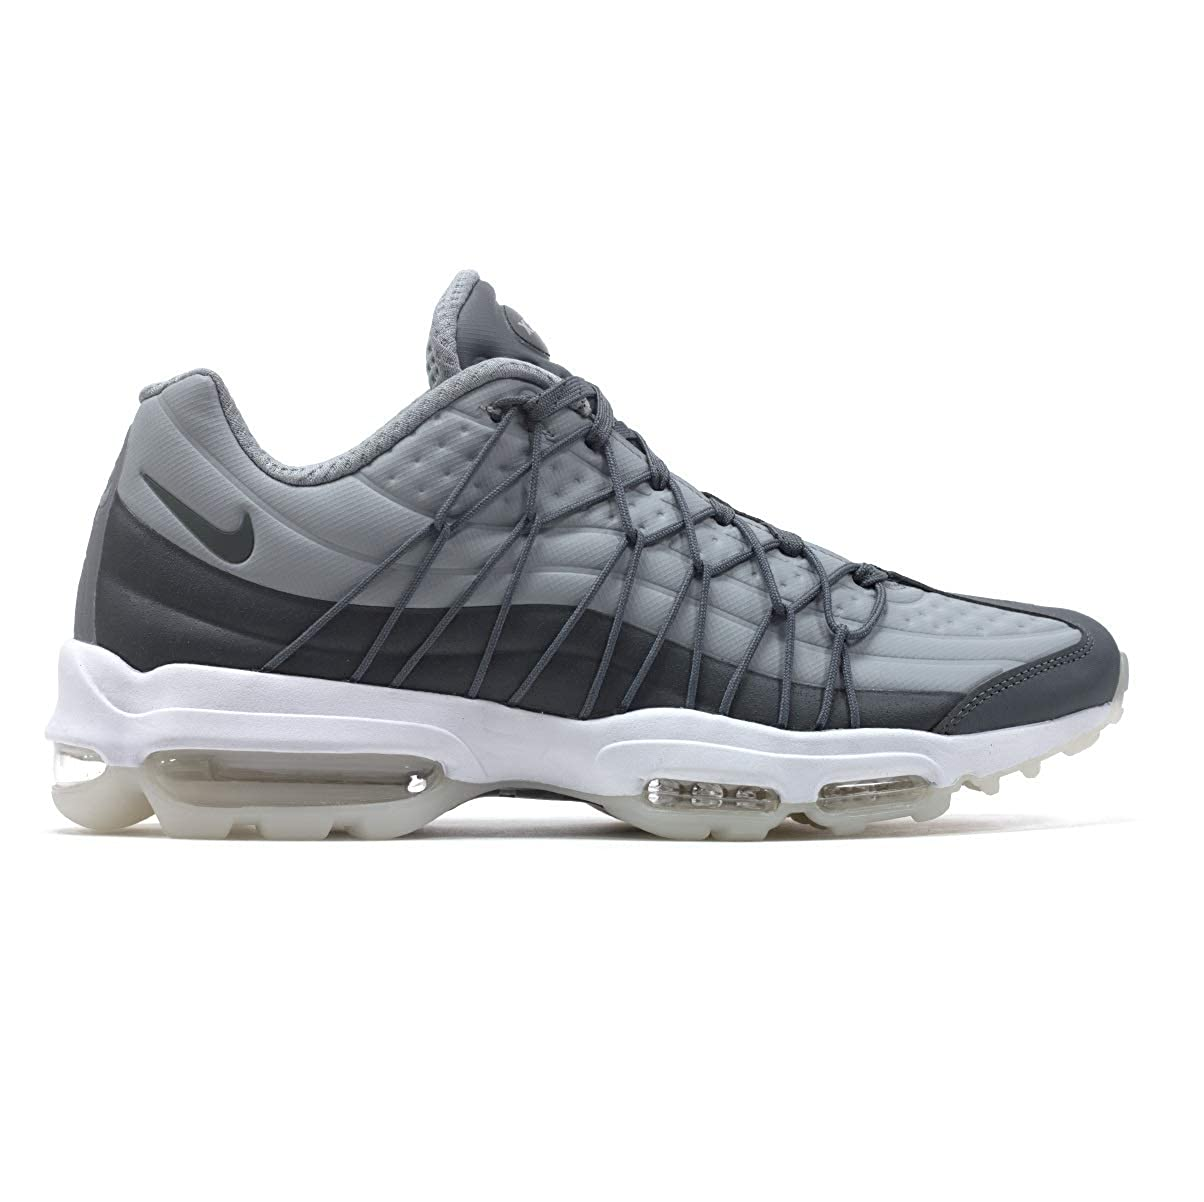 d2968d054e2b3 NIKE Mens AIR MAX 95 Ultra SE Cool Grey Running Trainers AO9082 009 ...